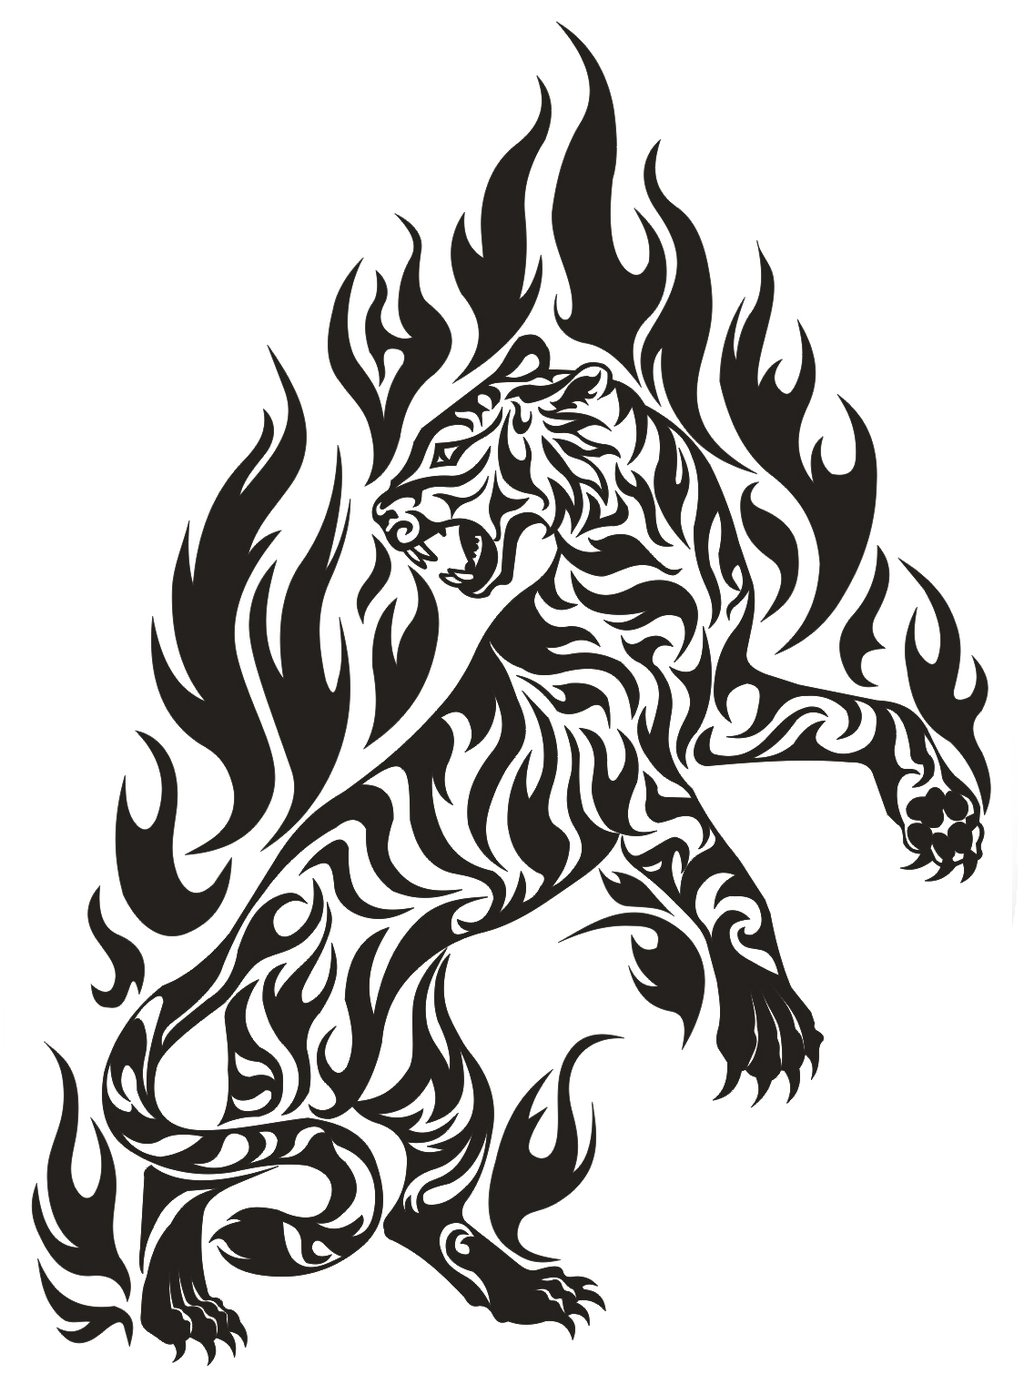 music designs tribal tatto tattoo men lion top of shoulder clipart best clipart best. Black Bedroom Furniture Sets. Home Design Ideas